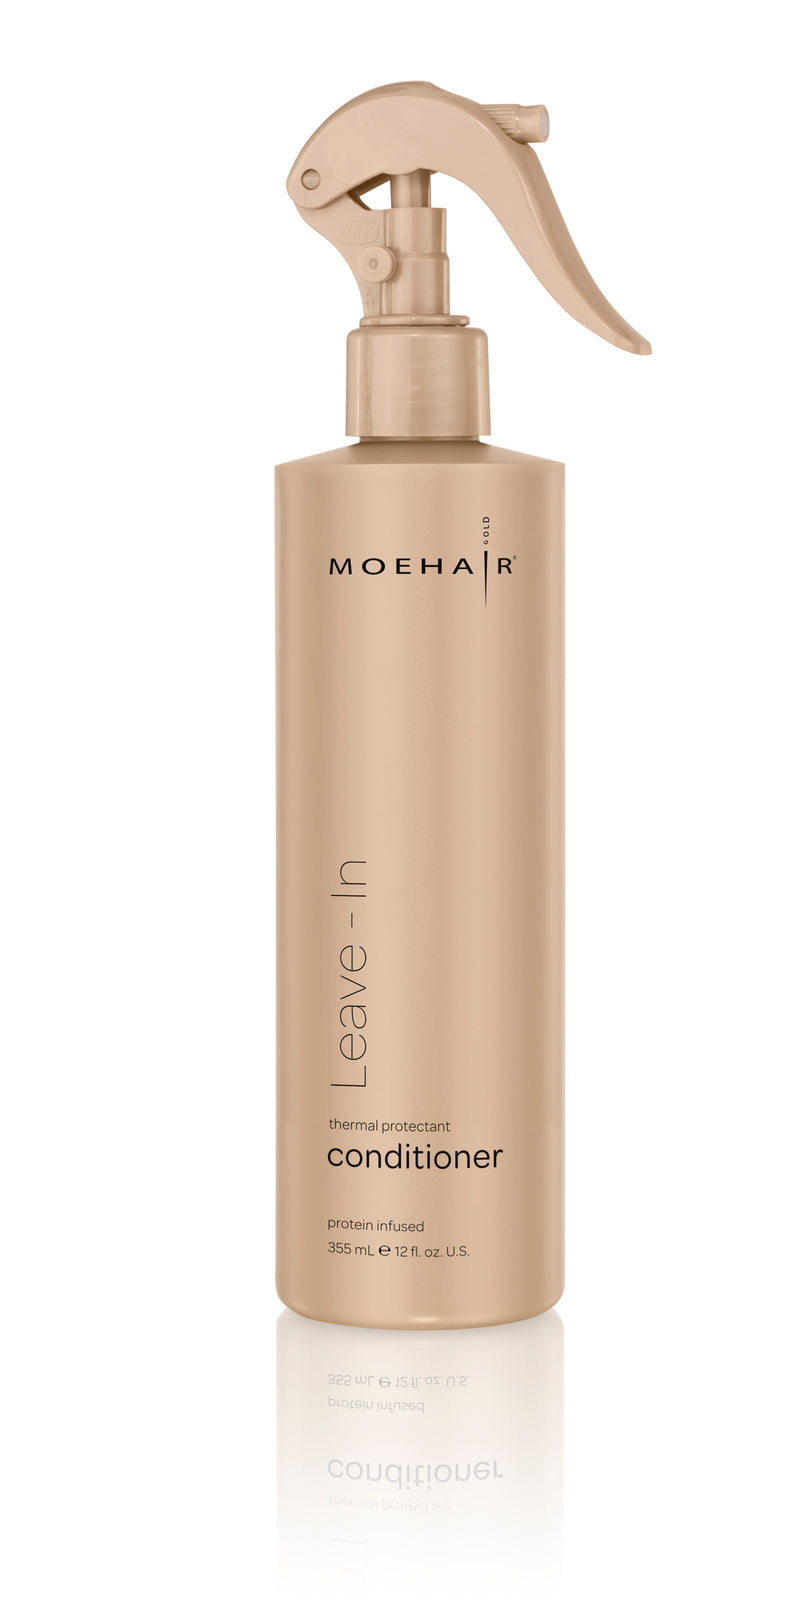 Mohair Leave-In Conditioner - 12 oz